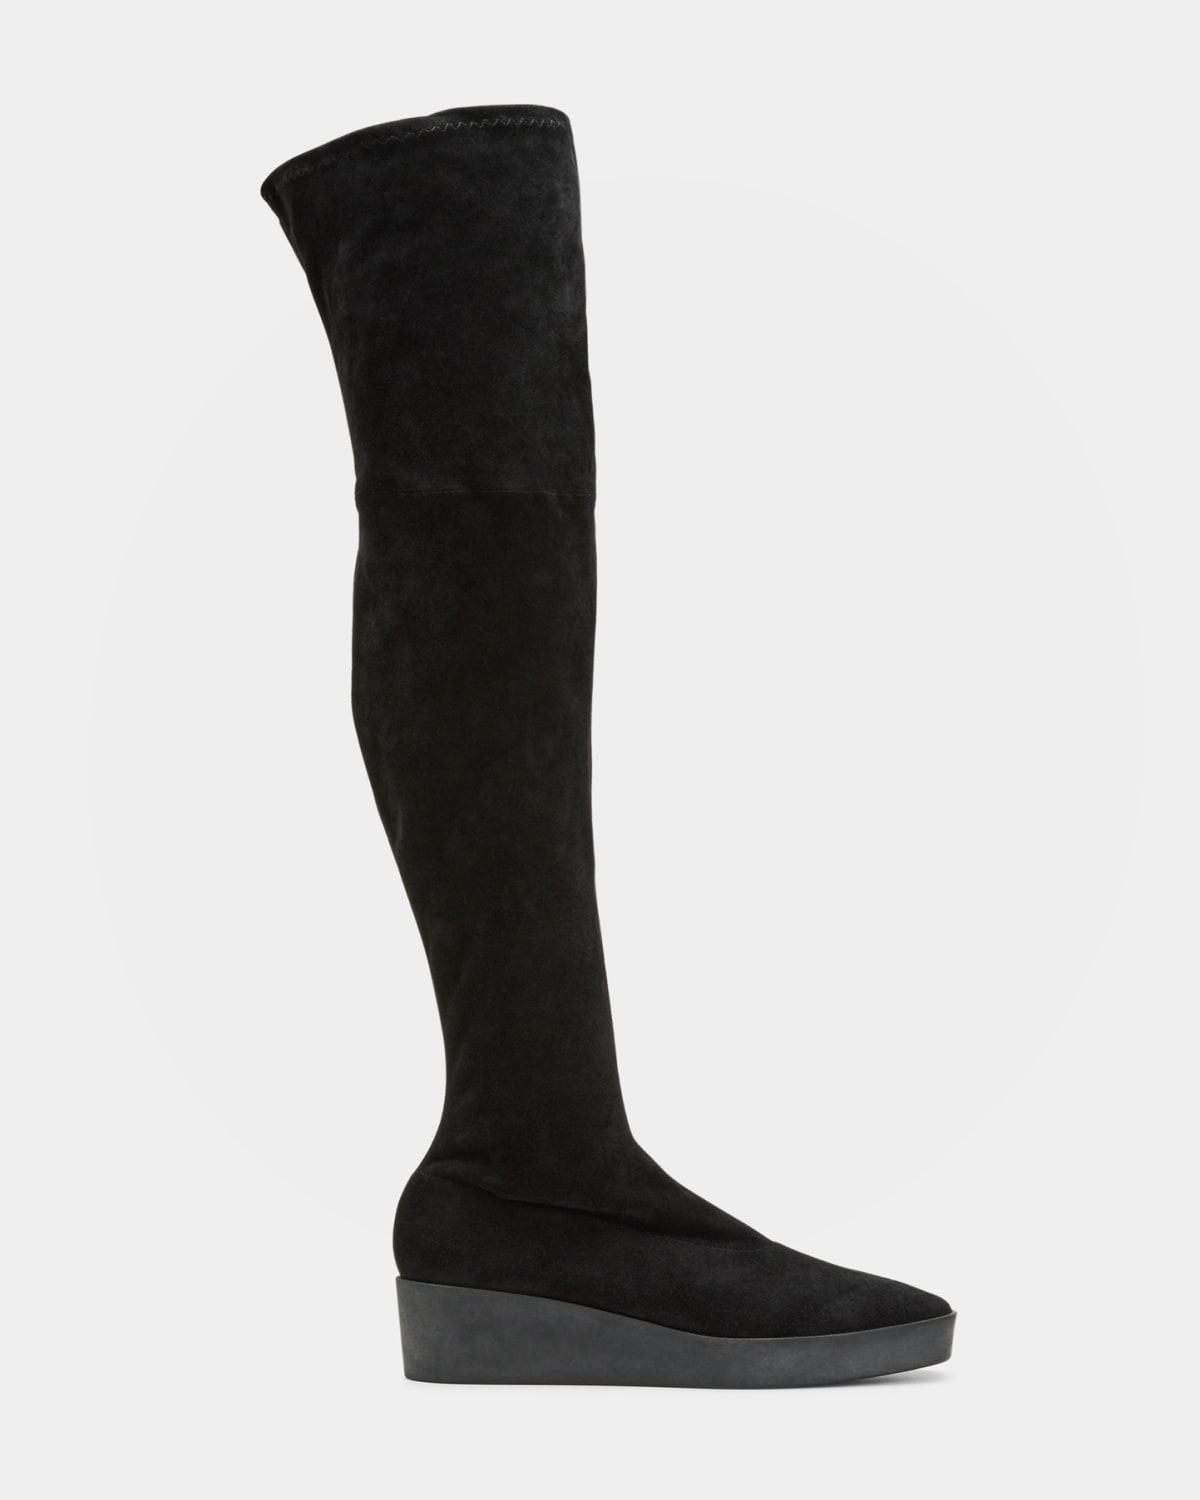 Glove Suede Over-the-Knee Wedge Boots